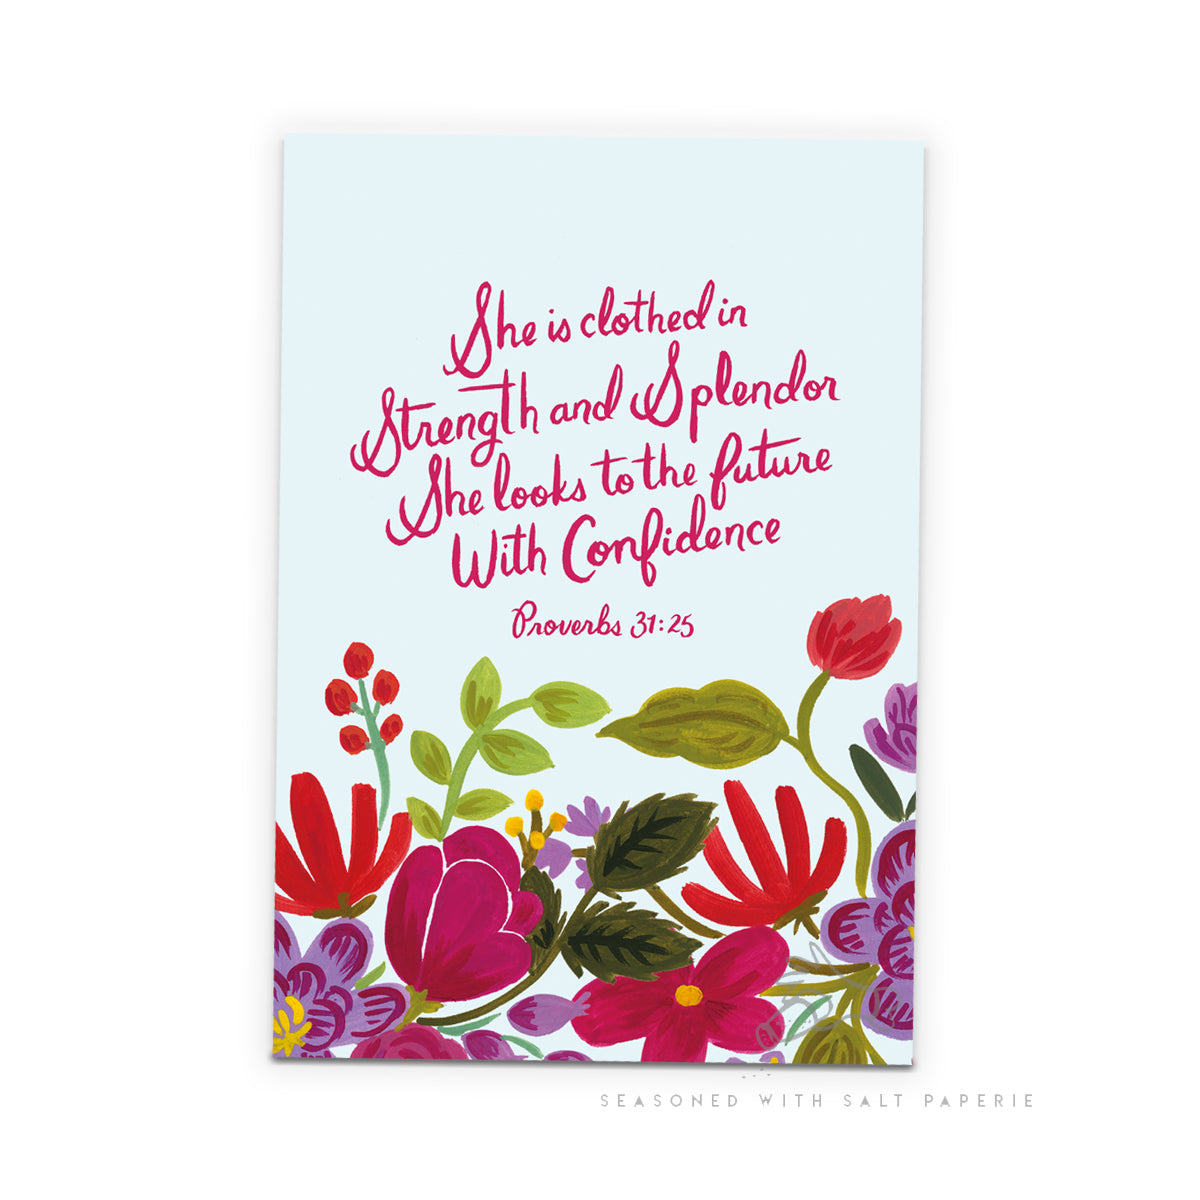 Floral Notebook - She is Clothed in Strength and Splendor... - Proverbs 31:25